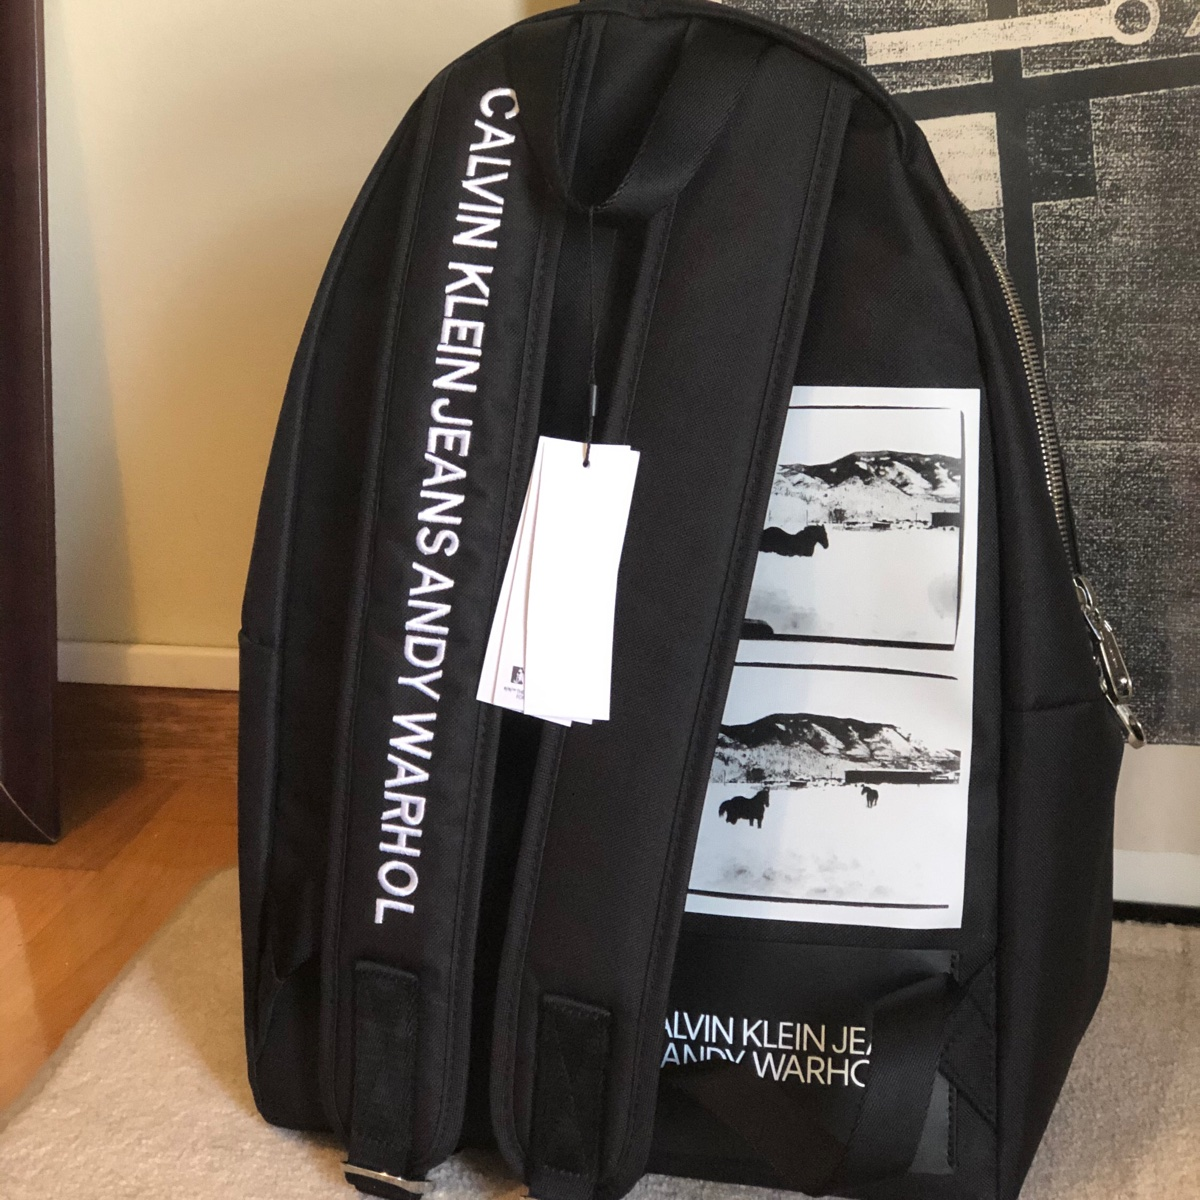 Calvin Klein By Raf Simons X Andy Warhol Backpack